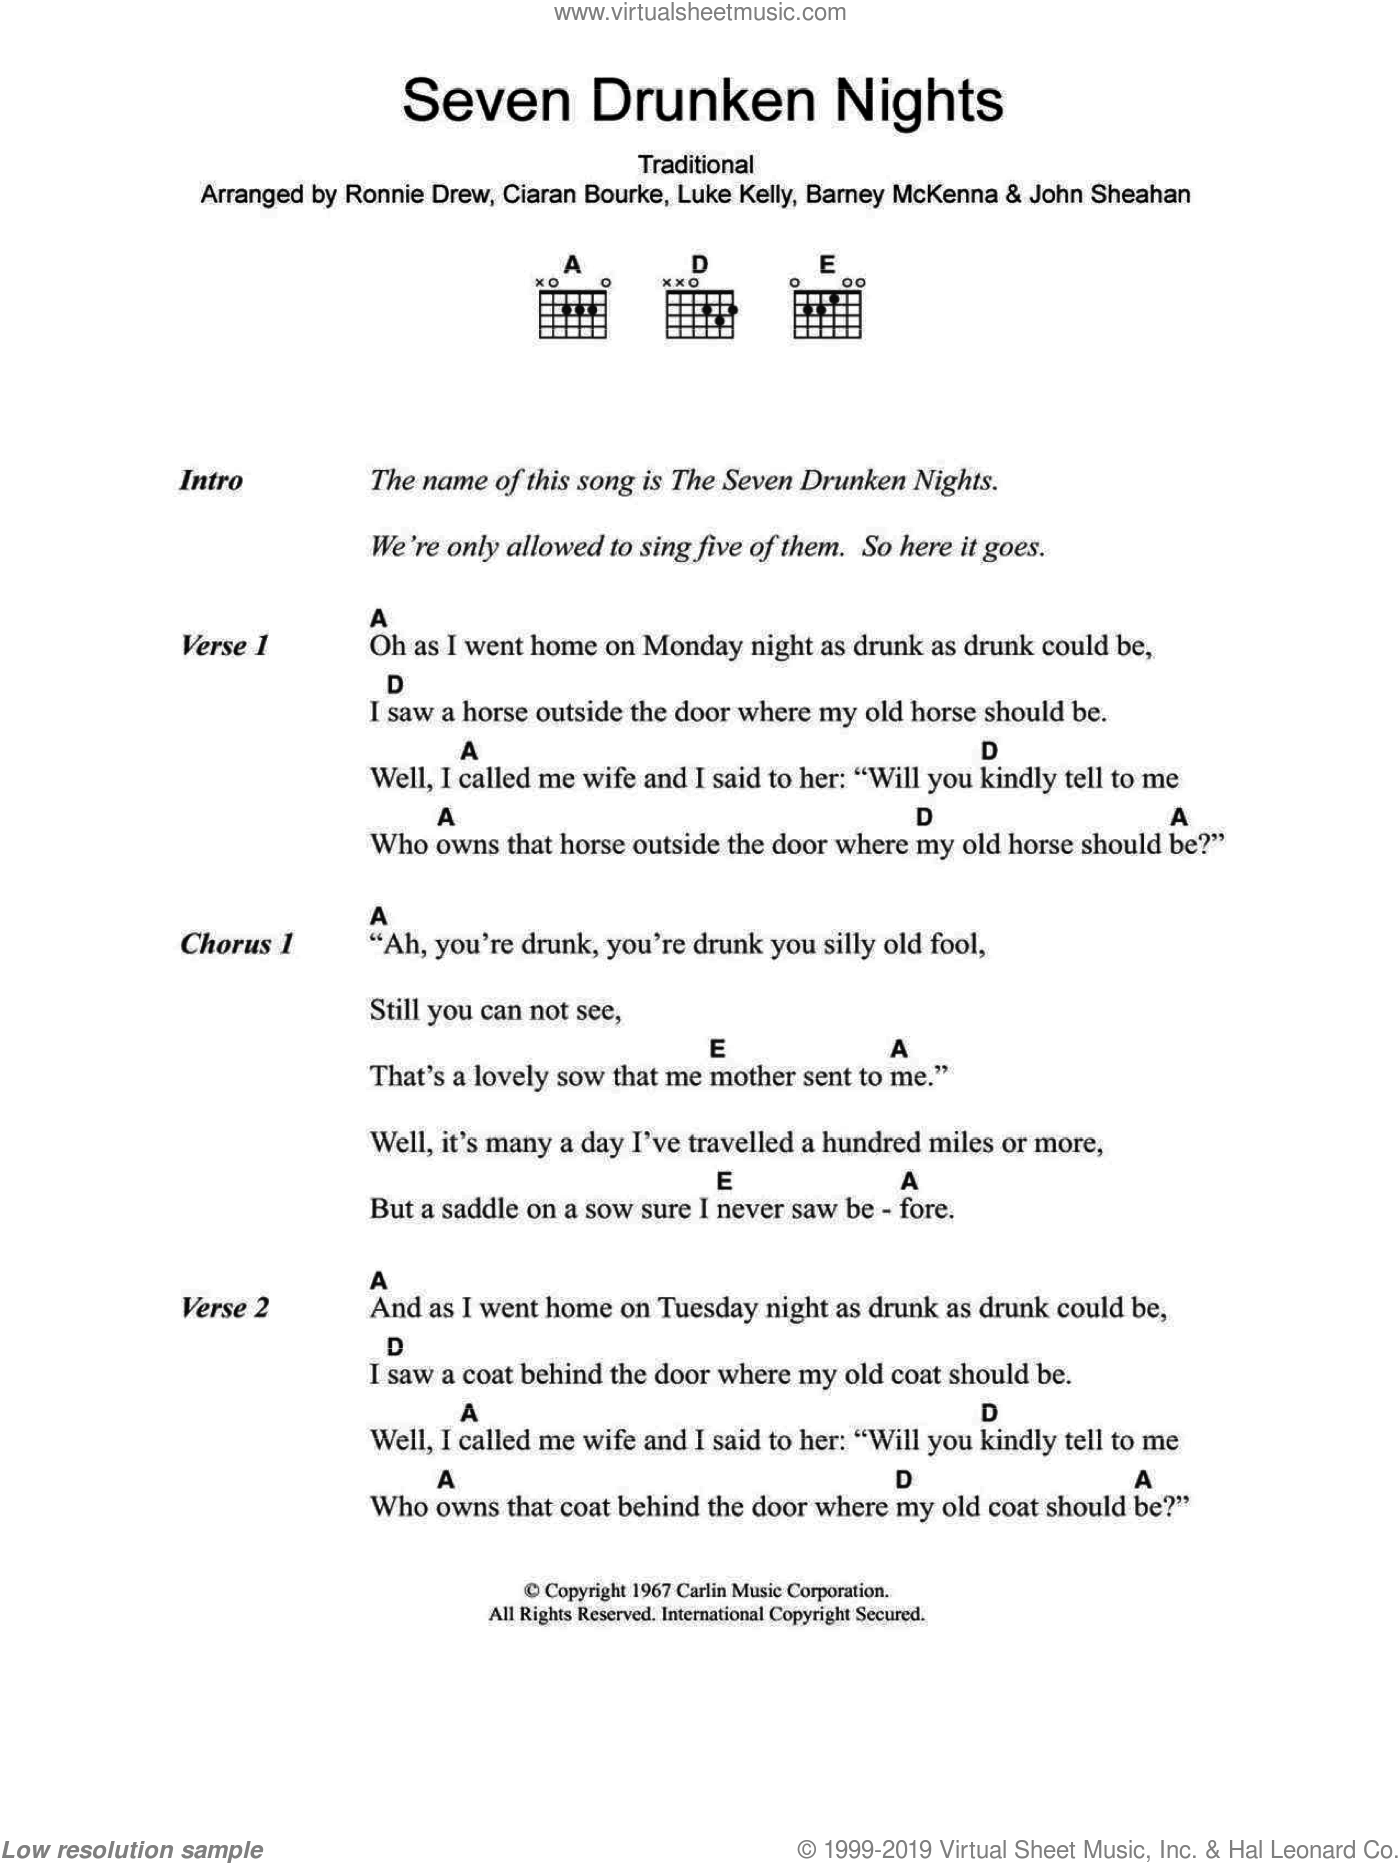 Seven Drunken Nights sheet music for guitar (chords) by The Dubliners, Barney McKenna, Ciaran Bourke, John Sheahan, Luke Kelly, Ronnie Drew and Miscellaneous, intermediate. Score Image Preview.